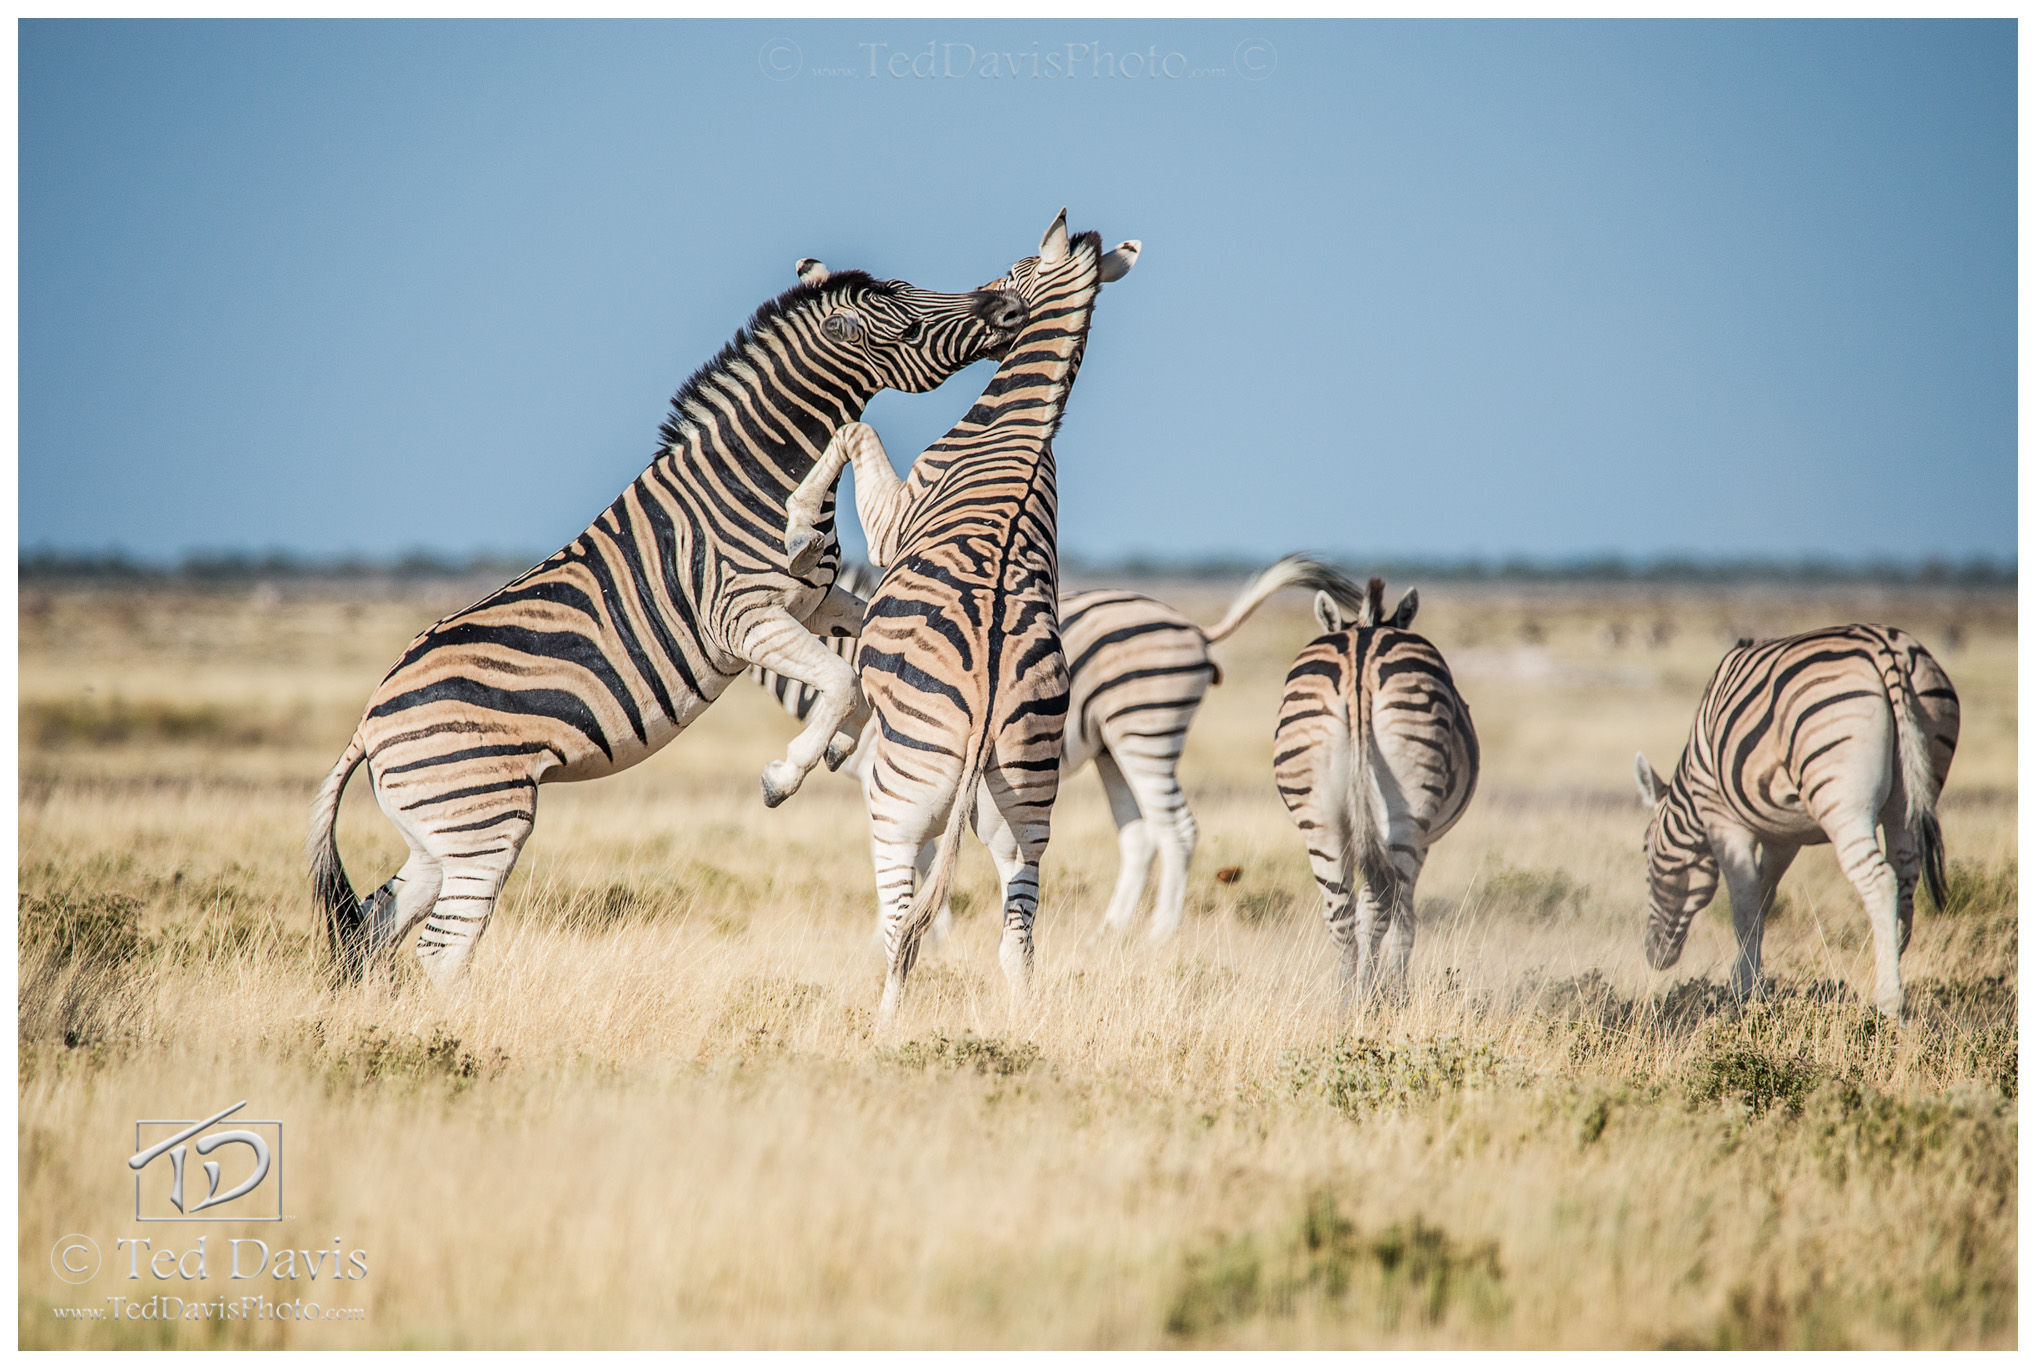 Etosha, steppe, scuffle, namibia, wilderbeast, ostrich, elephants, antelope, zebra, watering, leopards, lions, cheetahs, photo